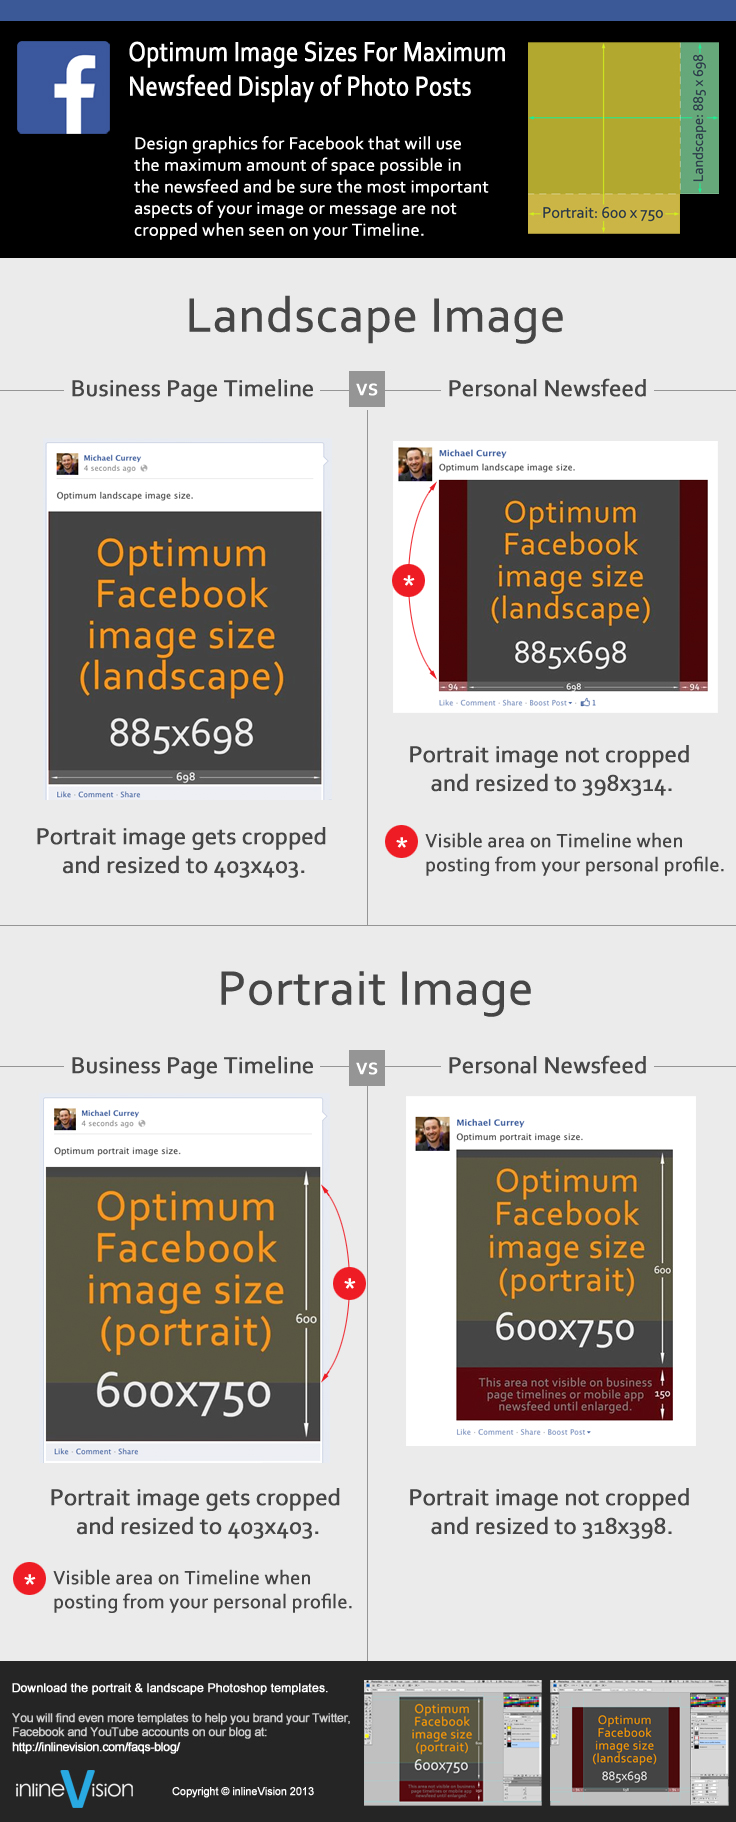 infographic - optimum image sizes for maximum newsfeed display of photo posts